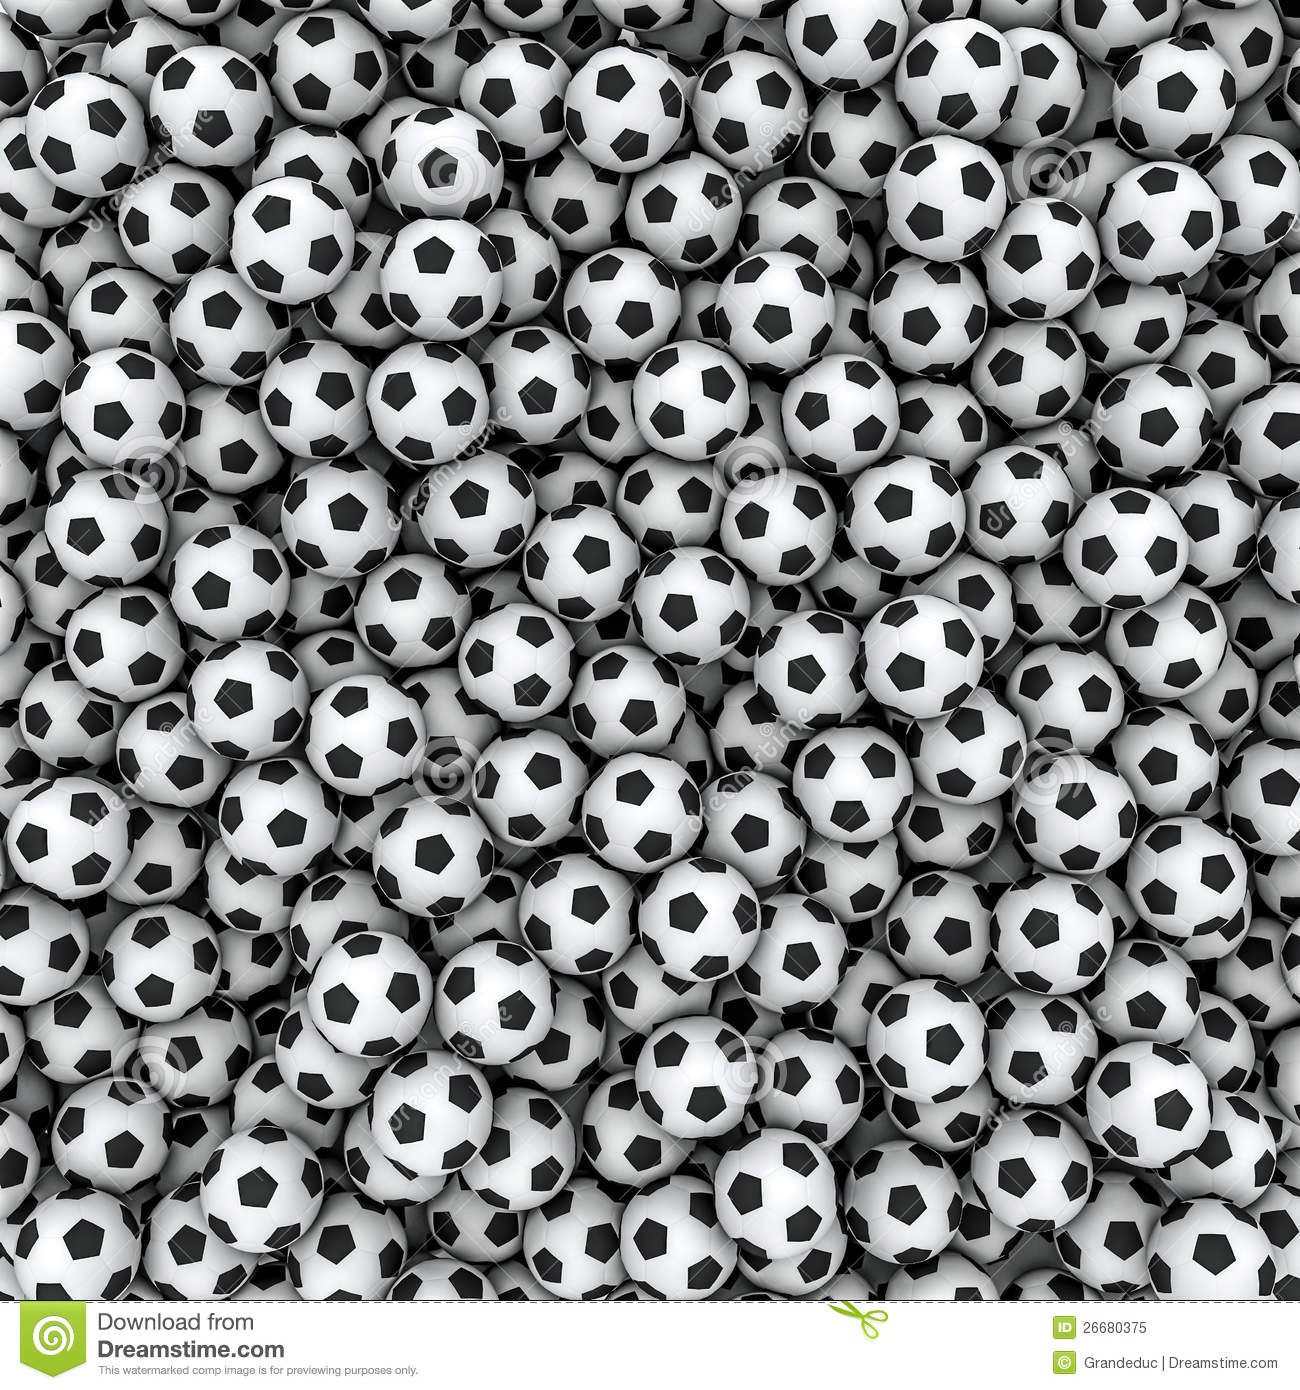 Soccer Balls Background Royalty Free Stock Photo - Image: 26680375